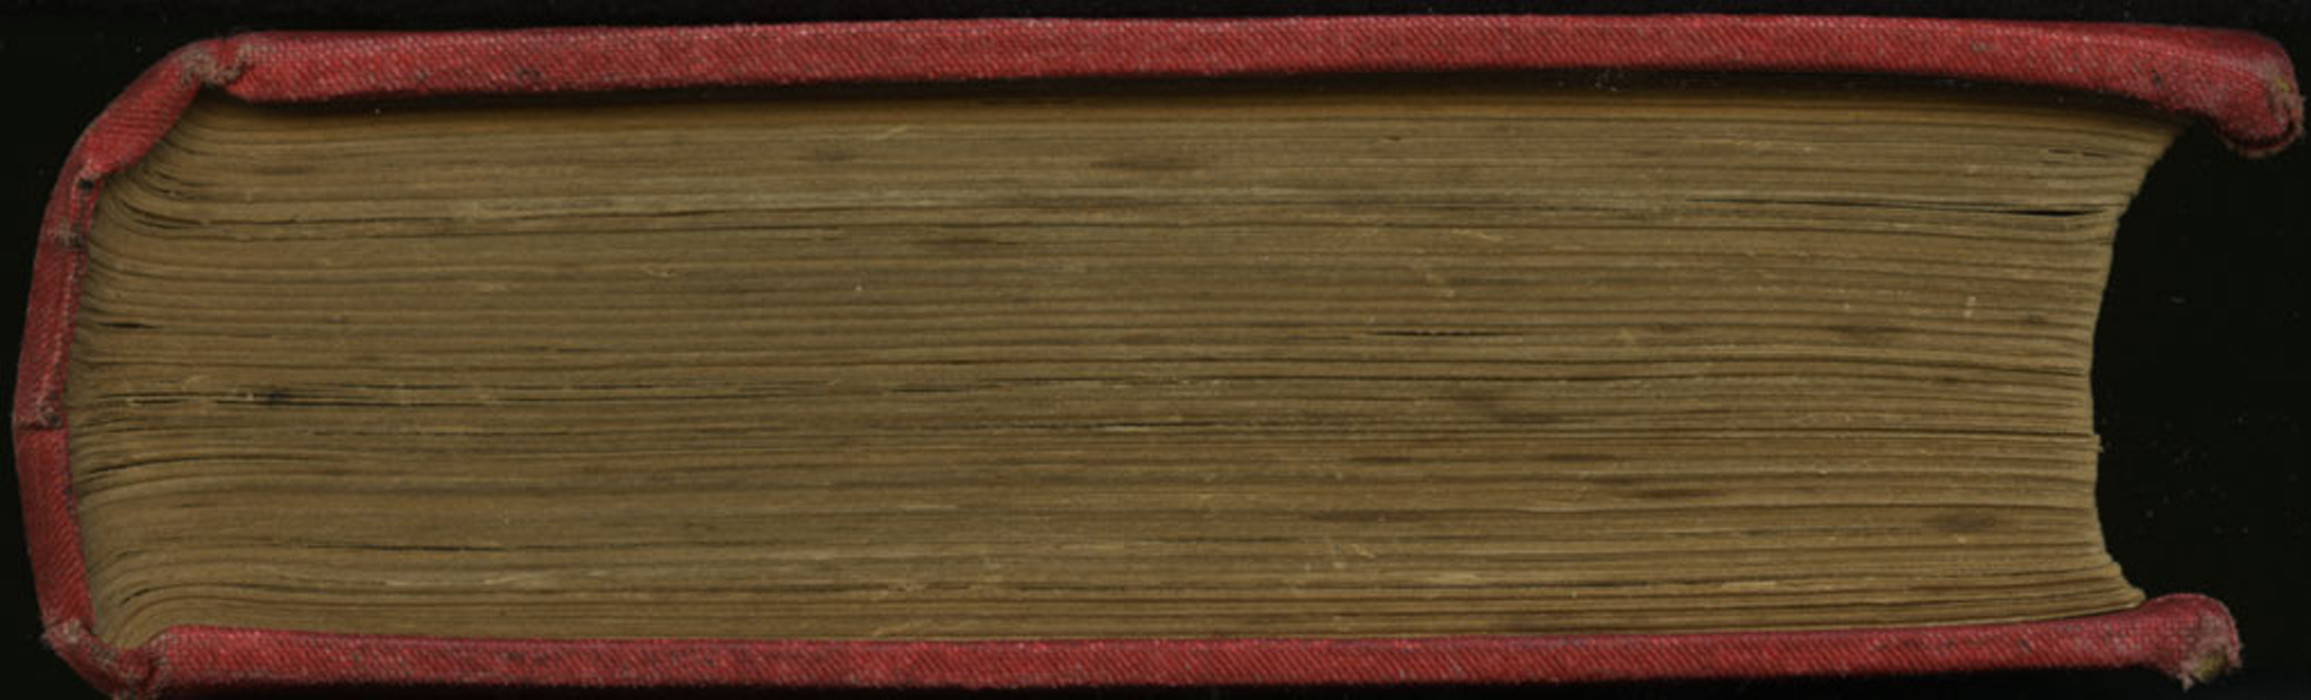 Tail of the [1896] James Nisbet Edition